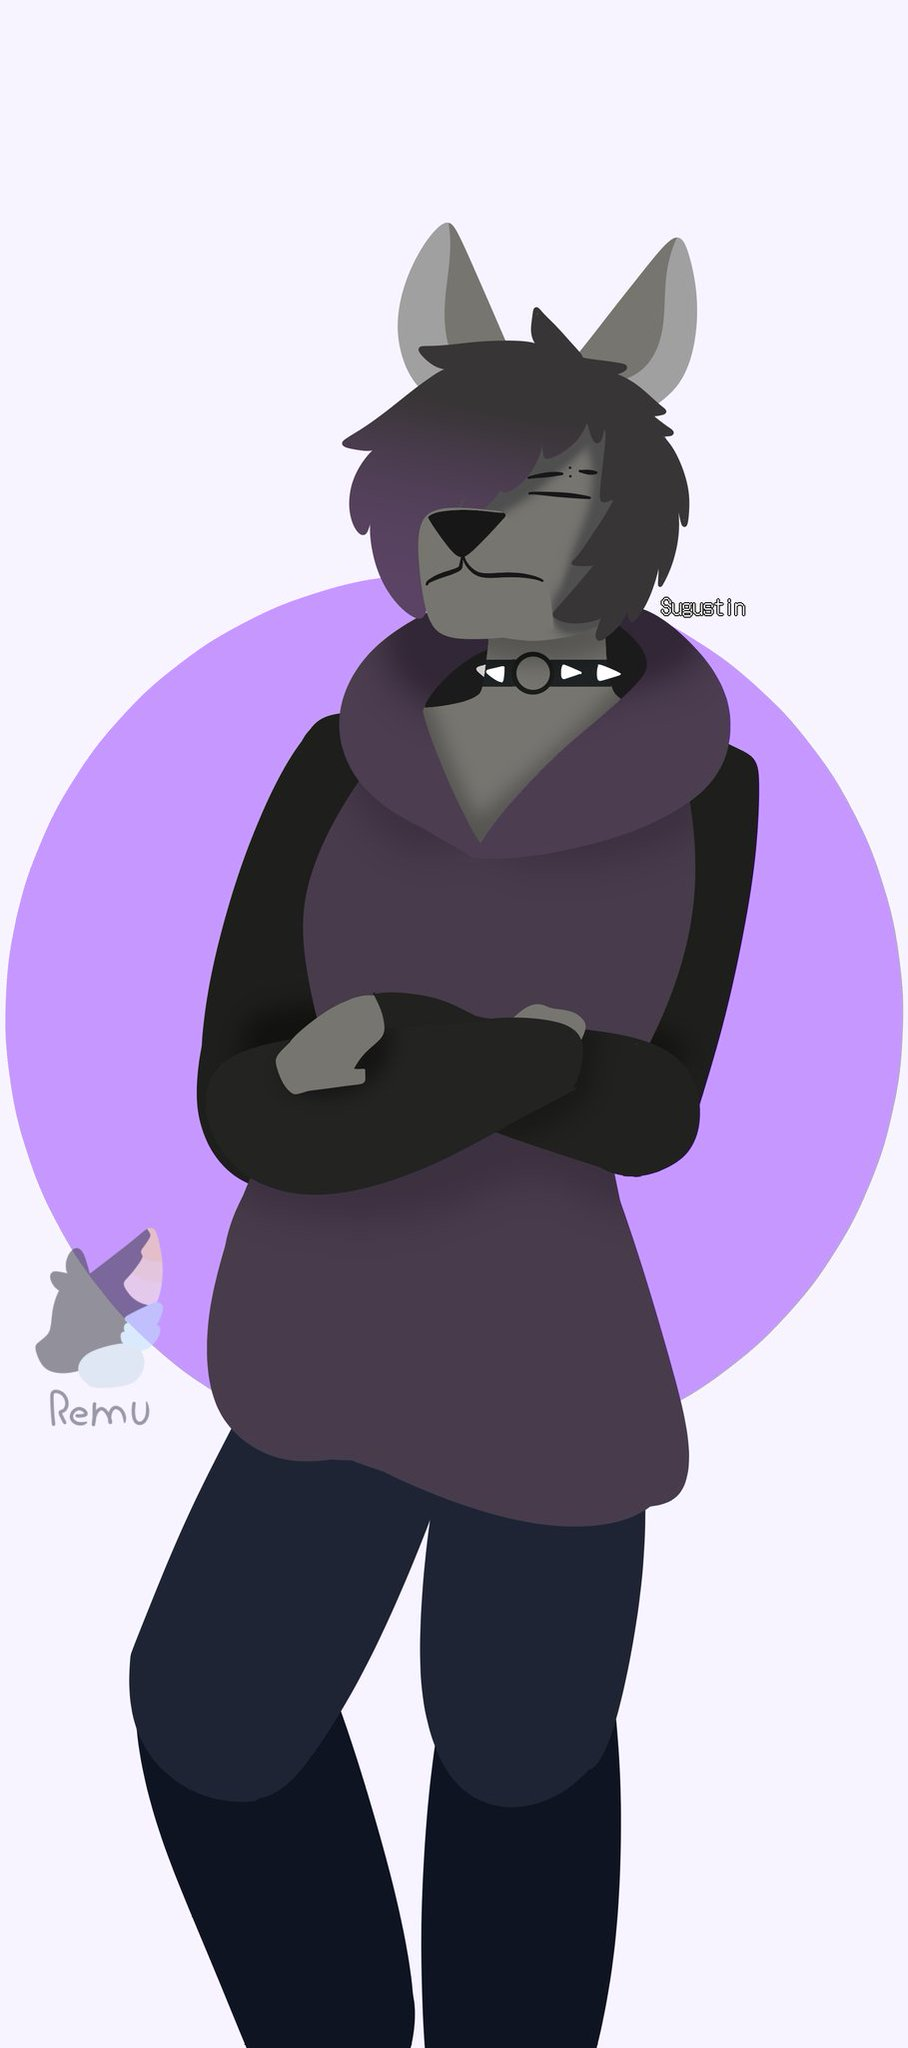 """2nd part of a """"Art-Trade"""" with Remu The Bat"""